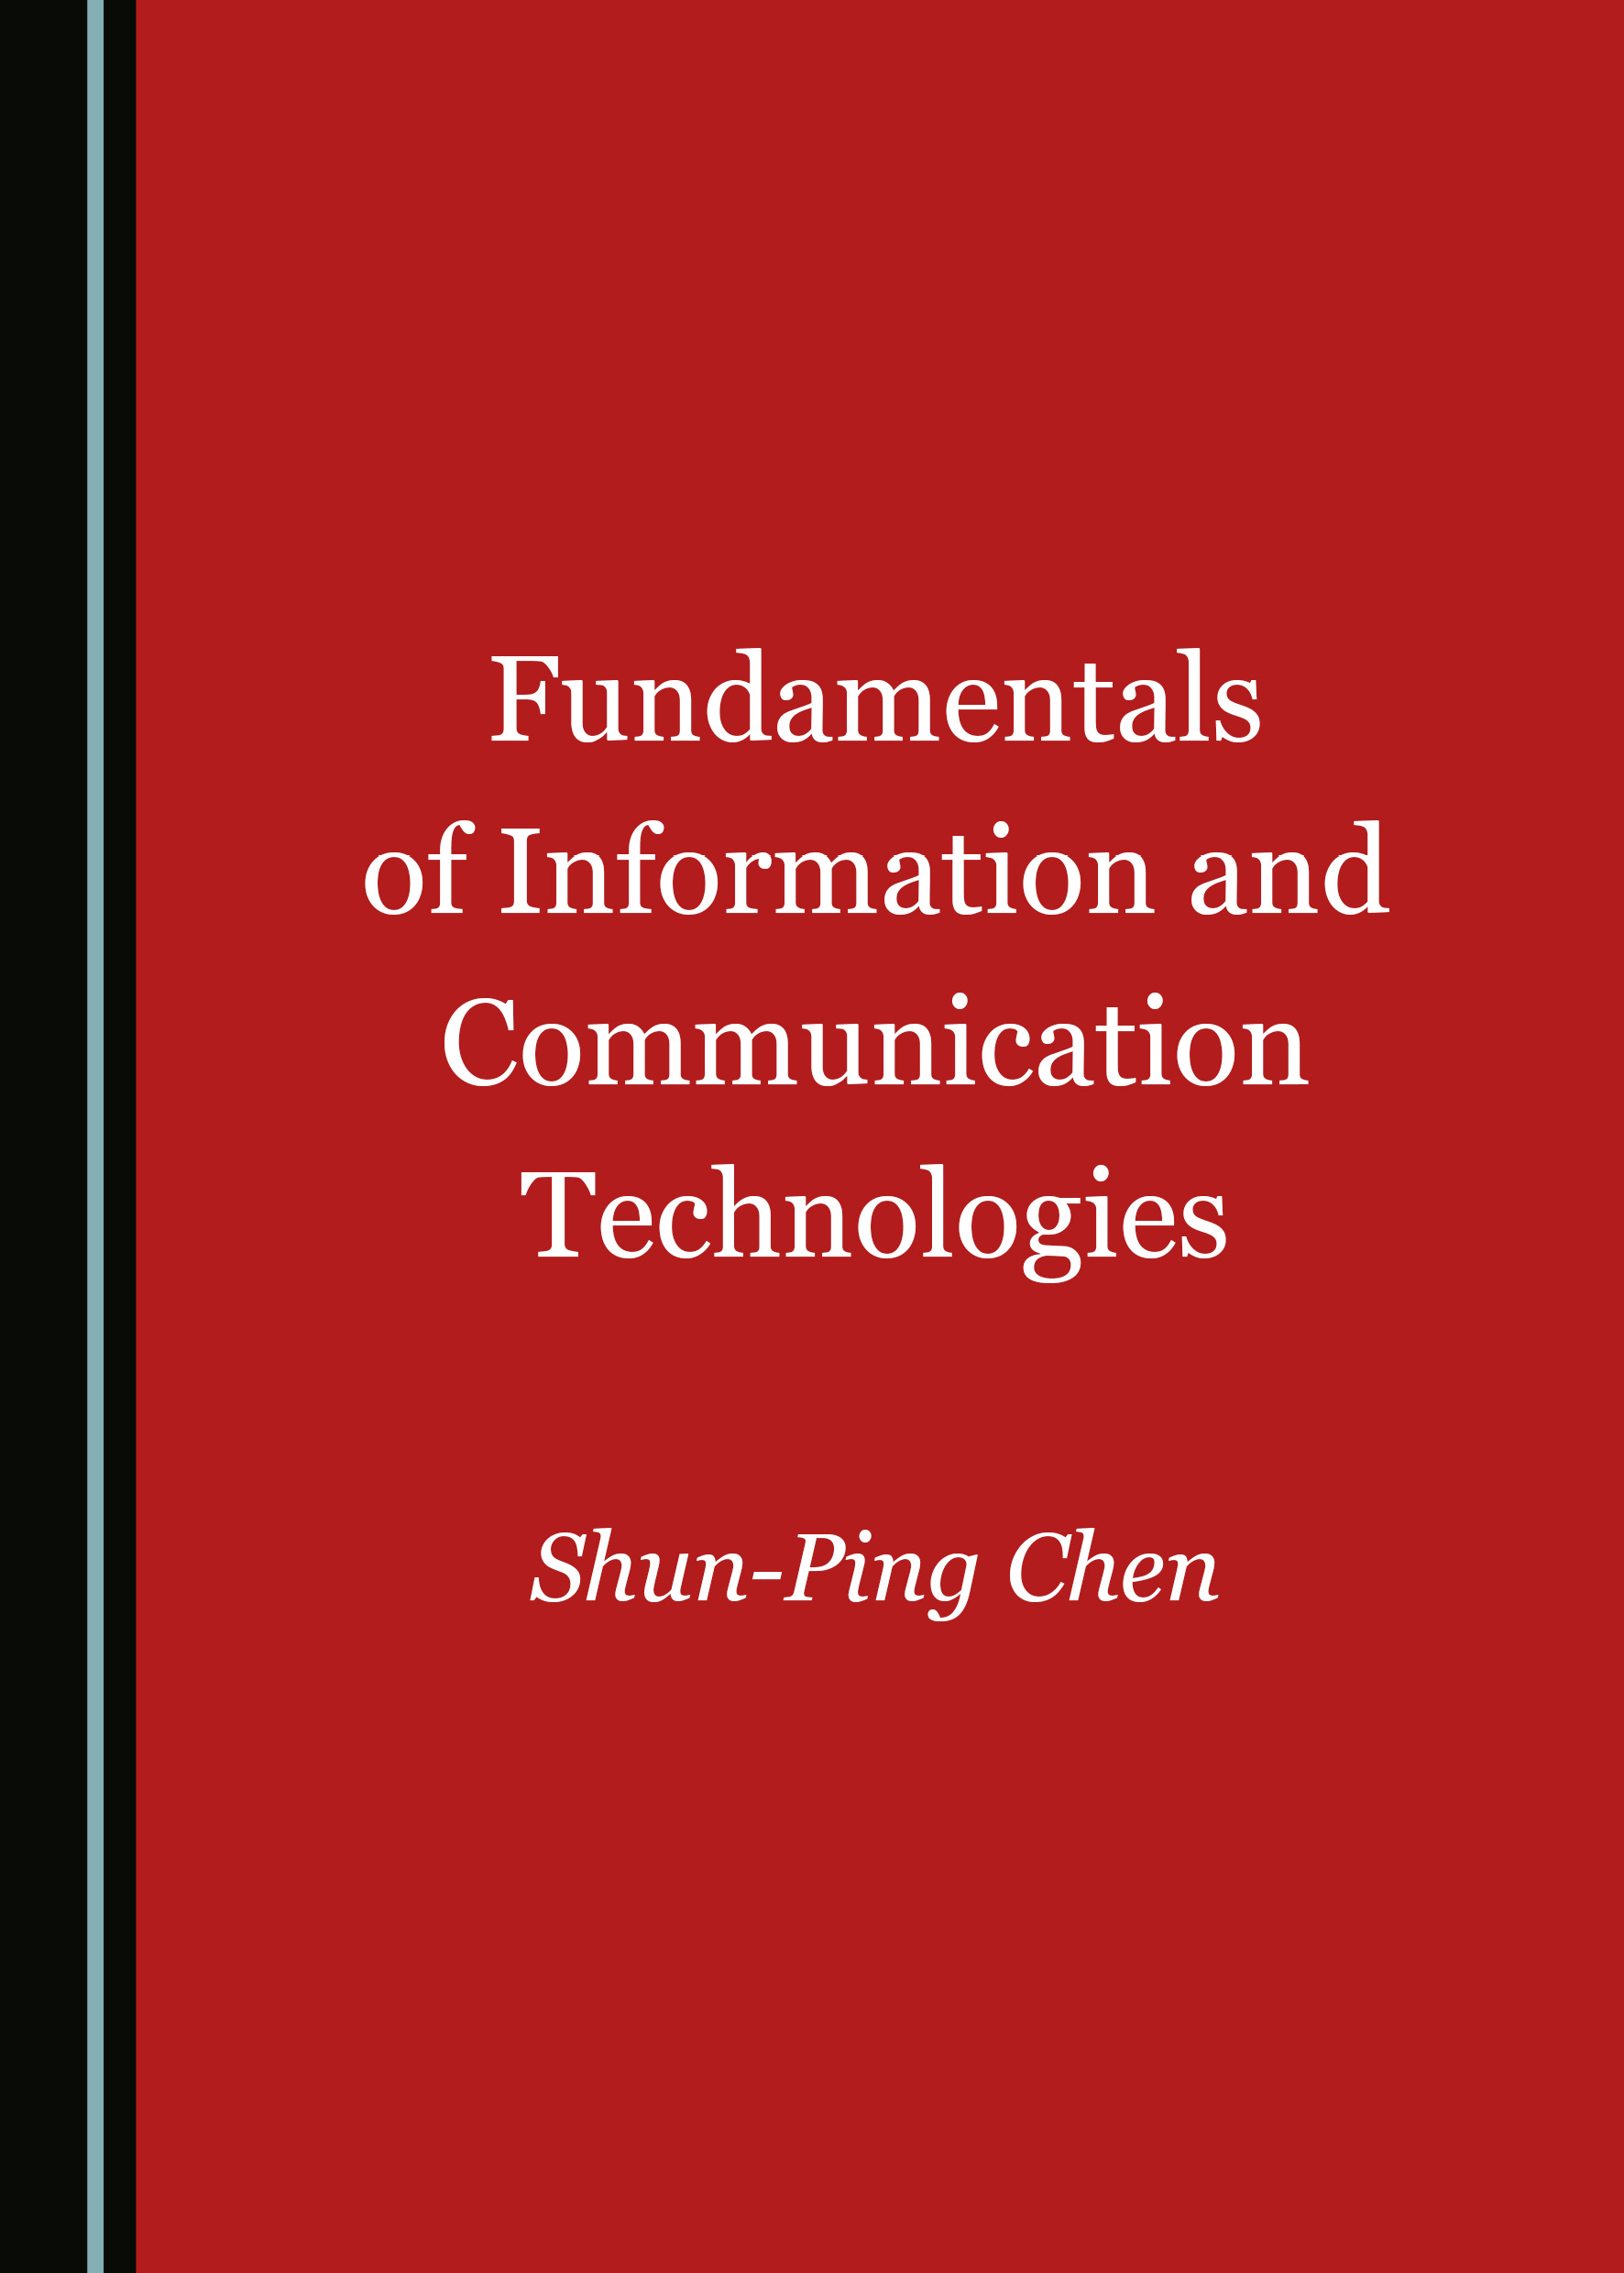 Fundamentals of Information and Communication Technologies